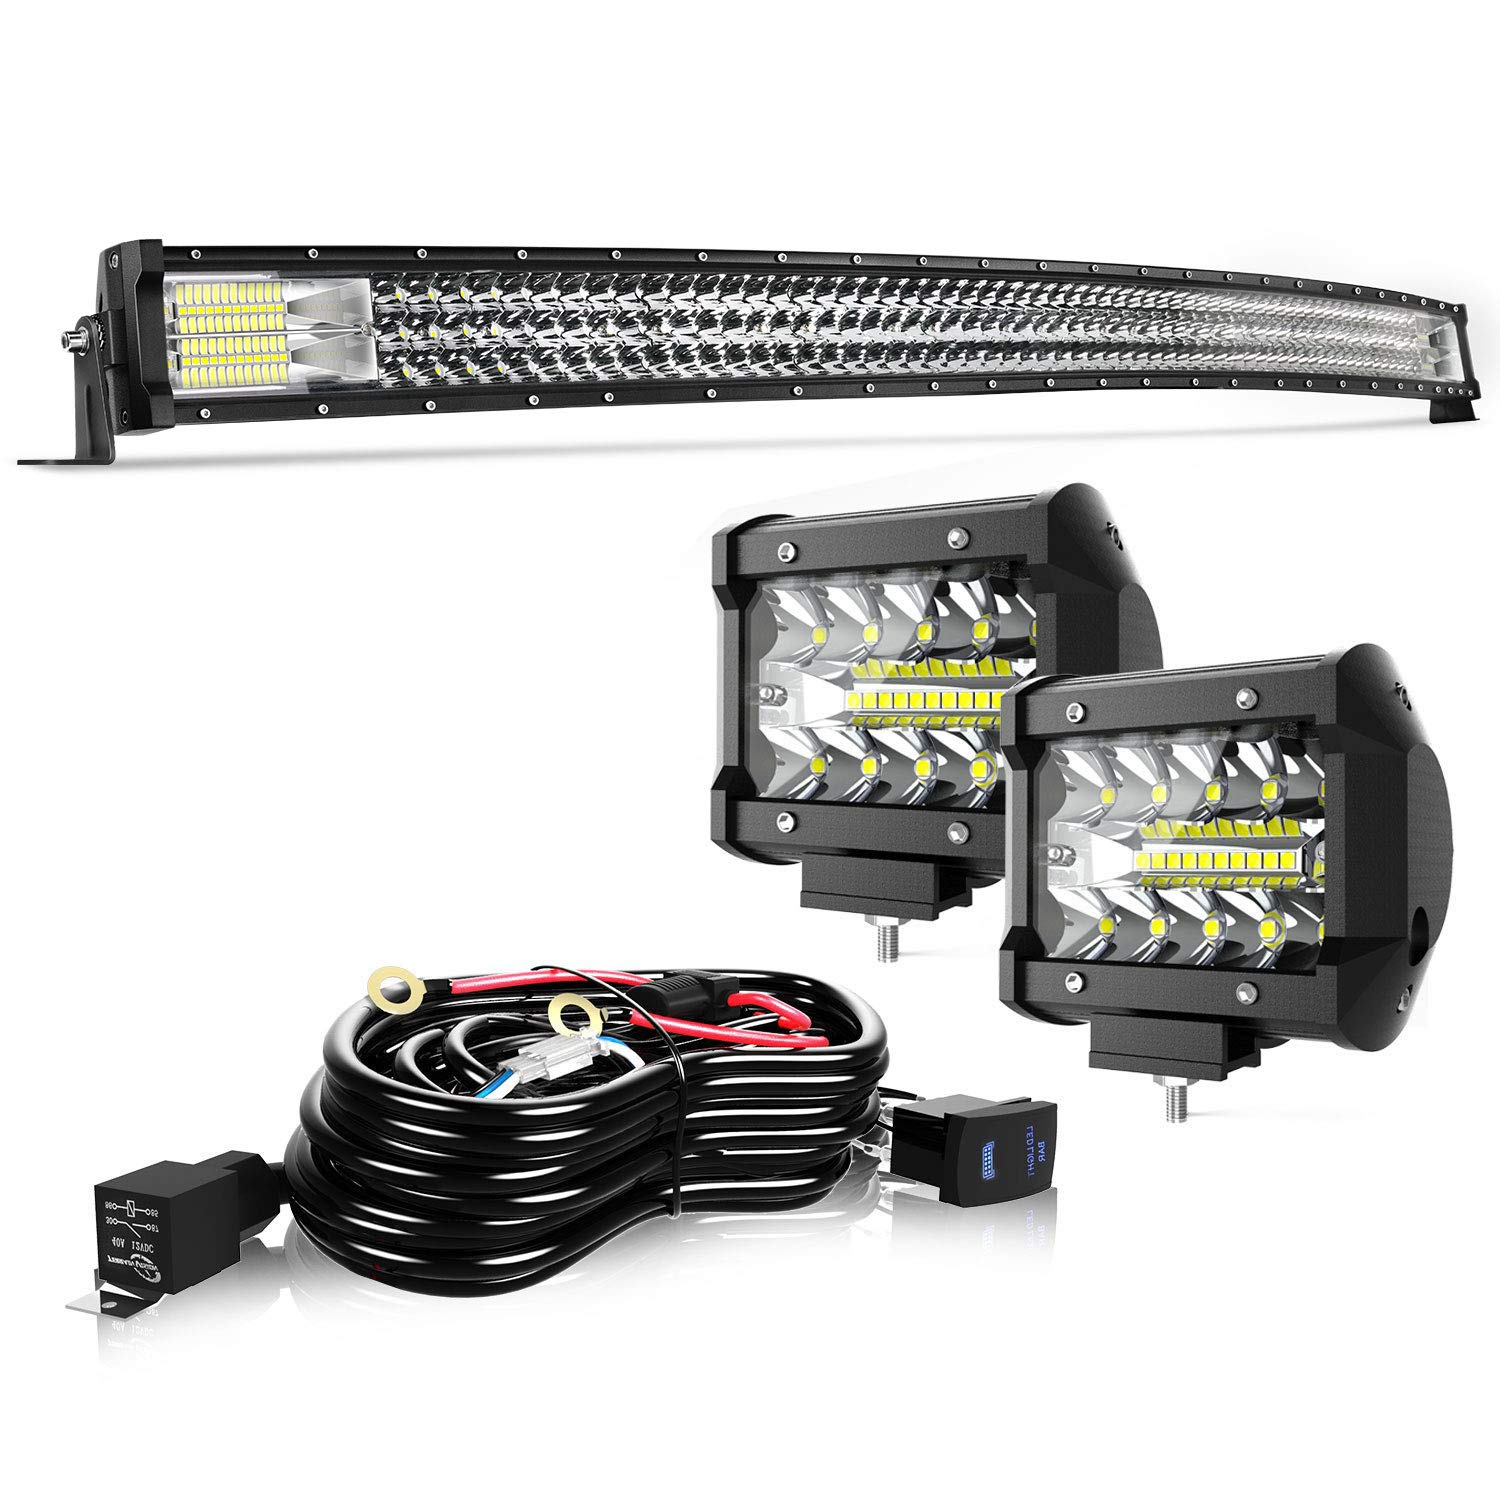 TURBO SII 52'' Curved LED Light Bar Triple Row 711W Flood Spot Combo Beam Led Bar W/ 2Pcs 4in 60W Off Road Driving Fog Lights with Wiring Harness-3 Leads for Jeep Trucks Polaris ATV Boats Lighting by TURBO SII